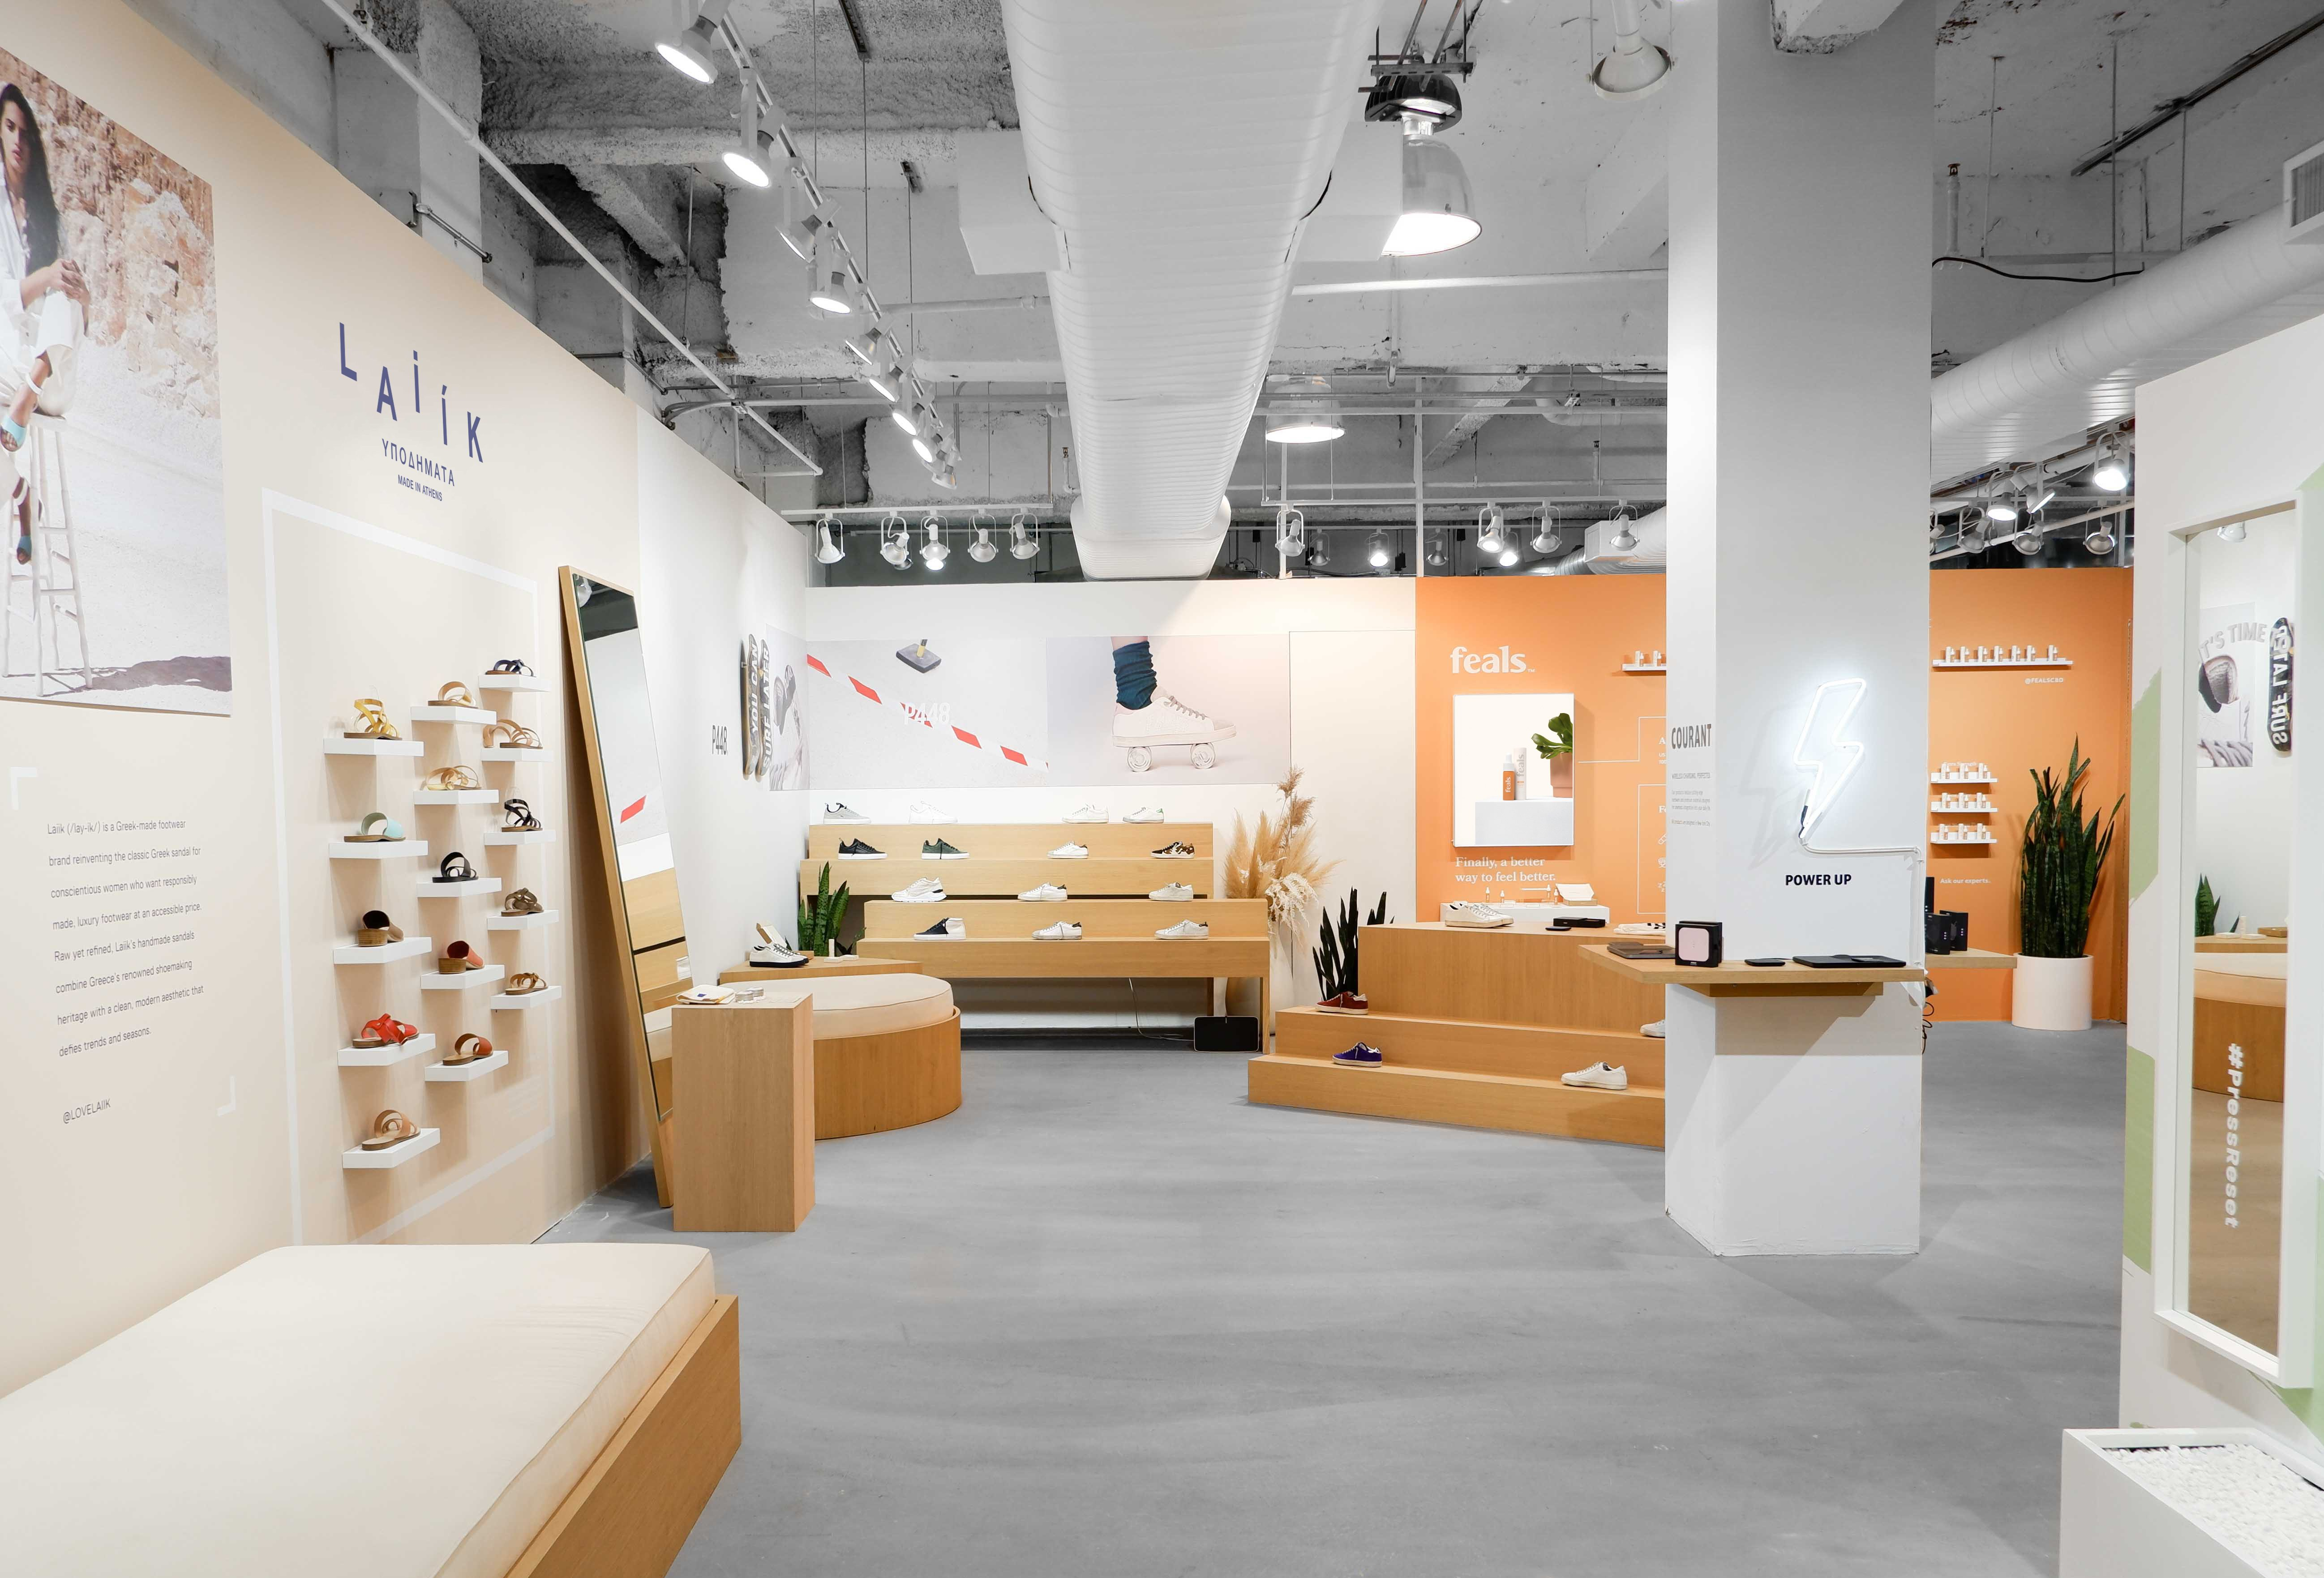 By creating two spaces within the flagship, each with a distinctive aesthetic, Naked Retail can widen its appeal to brands within a single location.